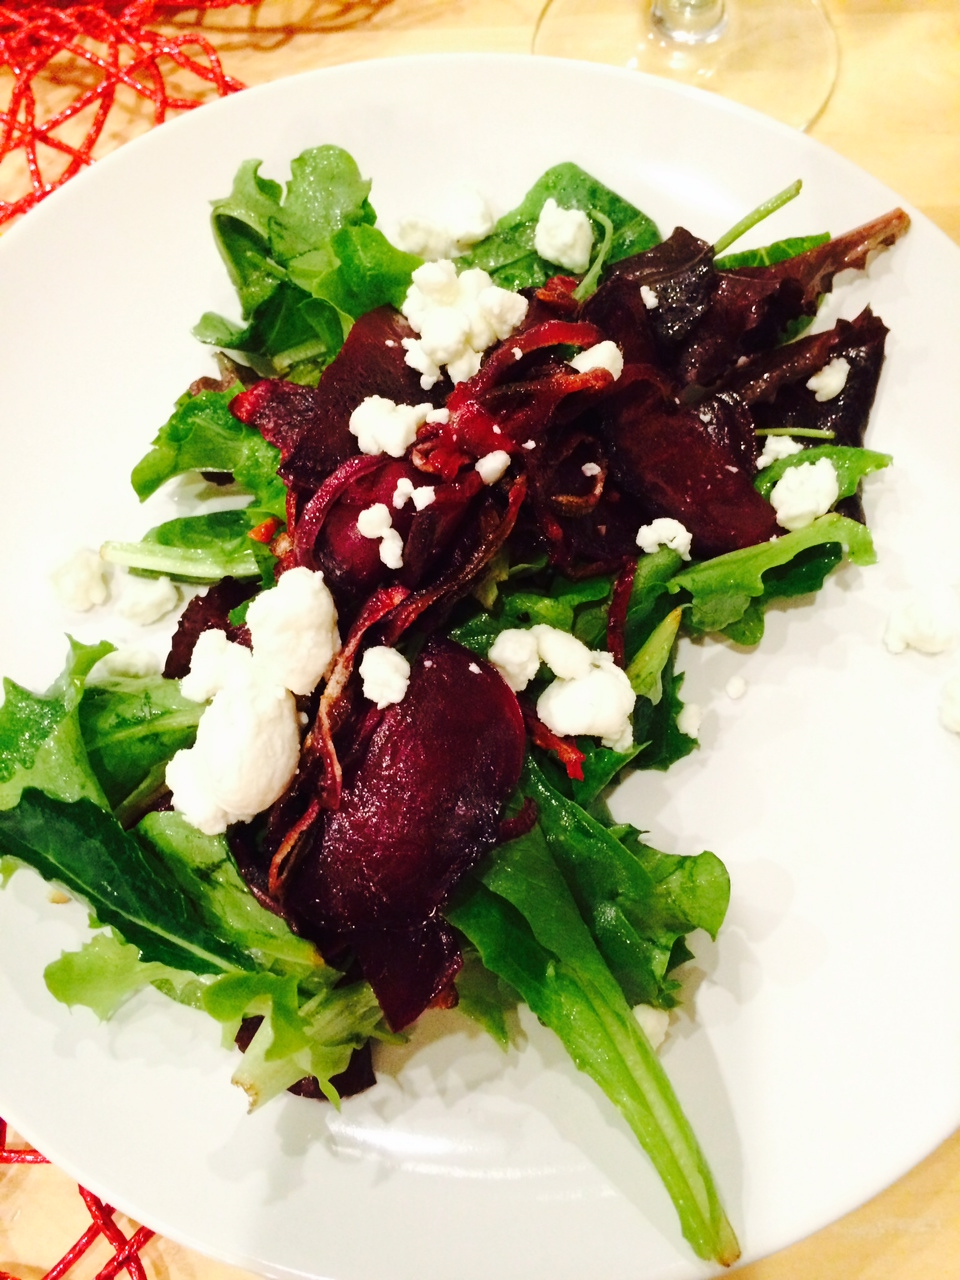 Roasted Beet & Goat Cheese Salad w/ Honey Truffle Vinaigrette, from Shiso Kitchen Valentine's Date Night Menu